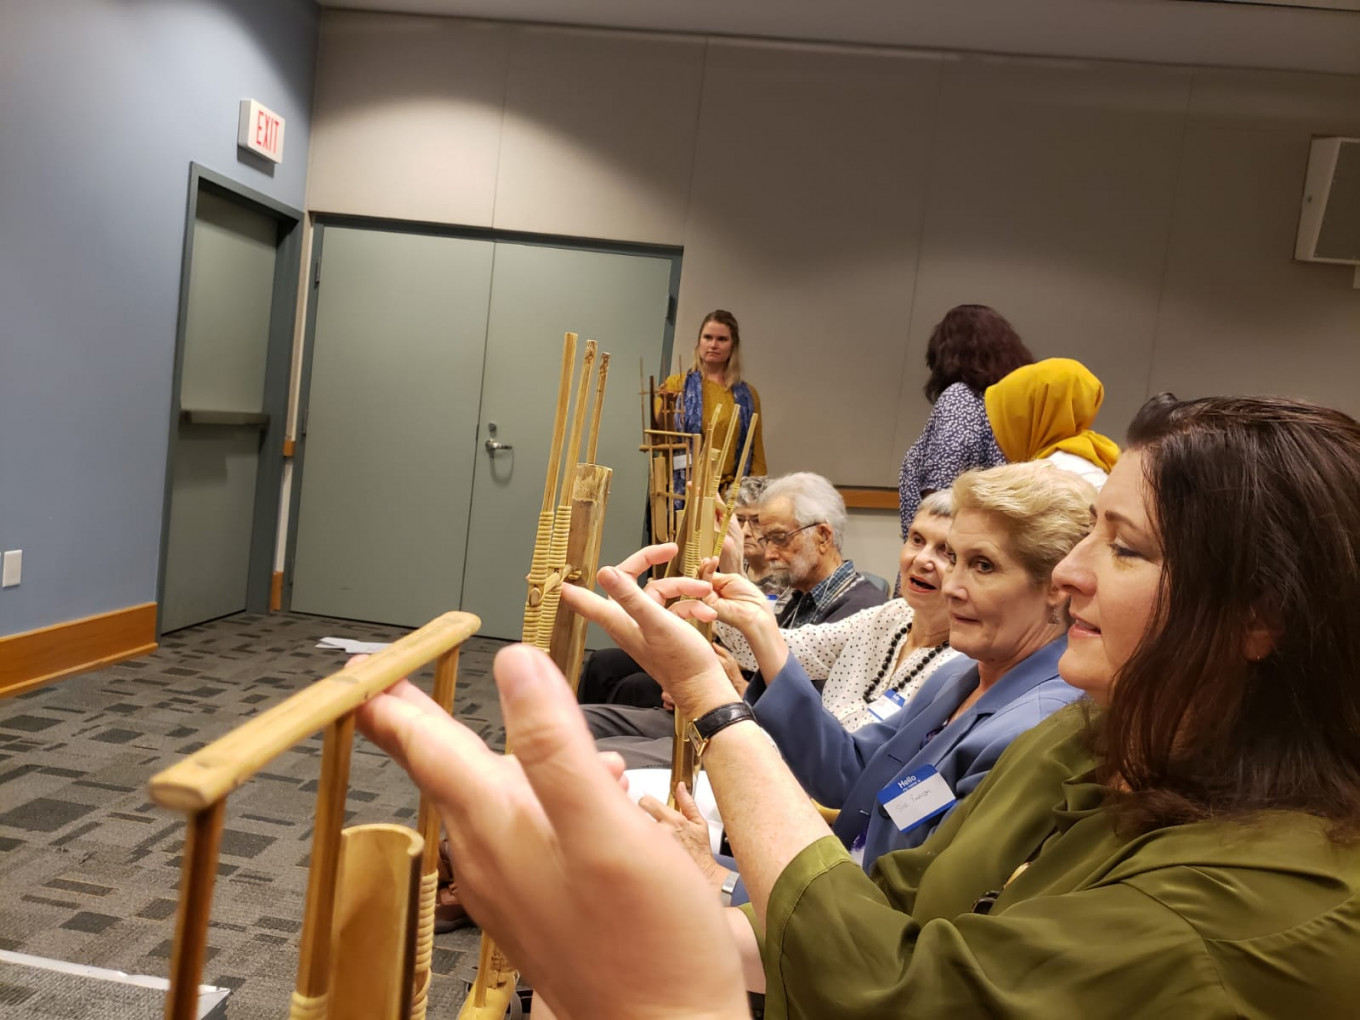 Angklung gets well-deserved excitement in Washington DC